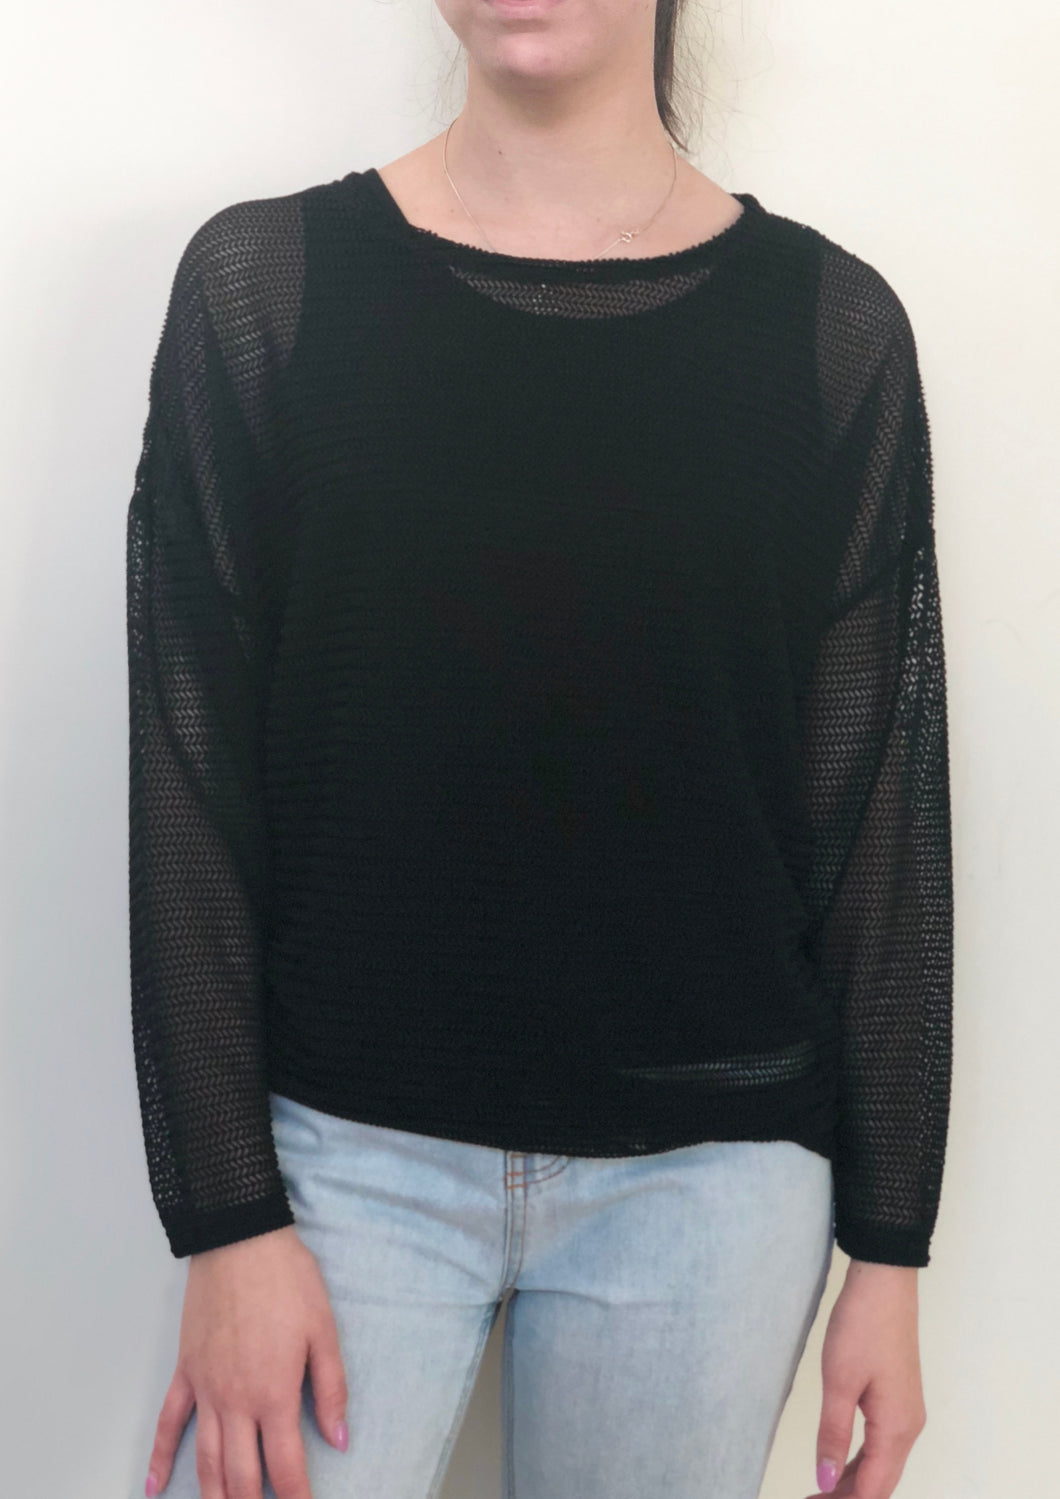 YW17168TB Mesh Long Sleeve Knit Top (Pack)